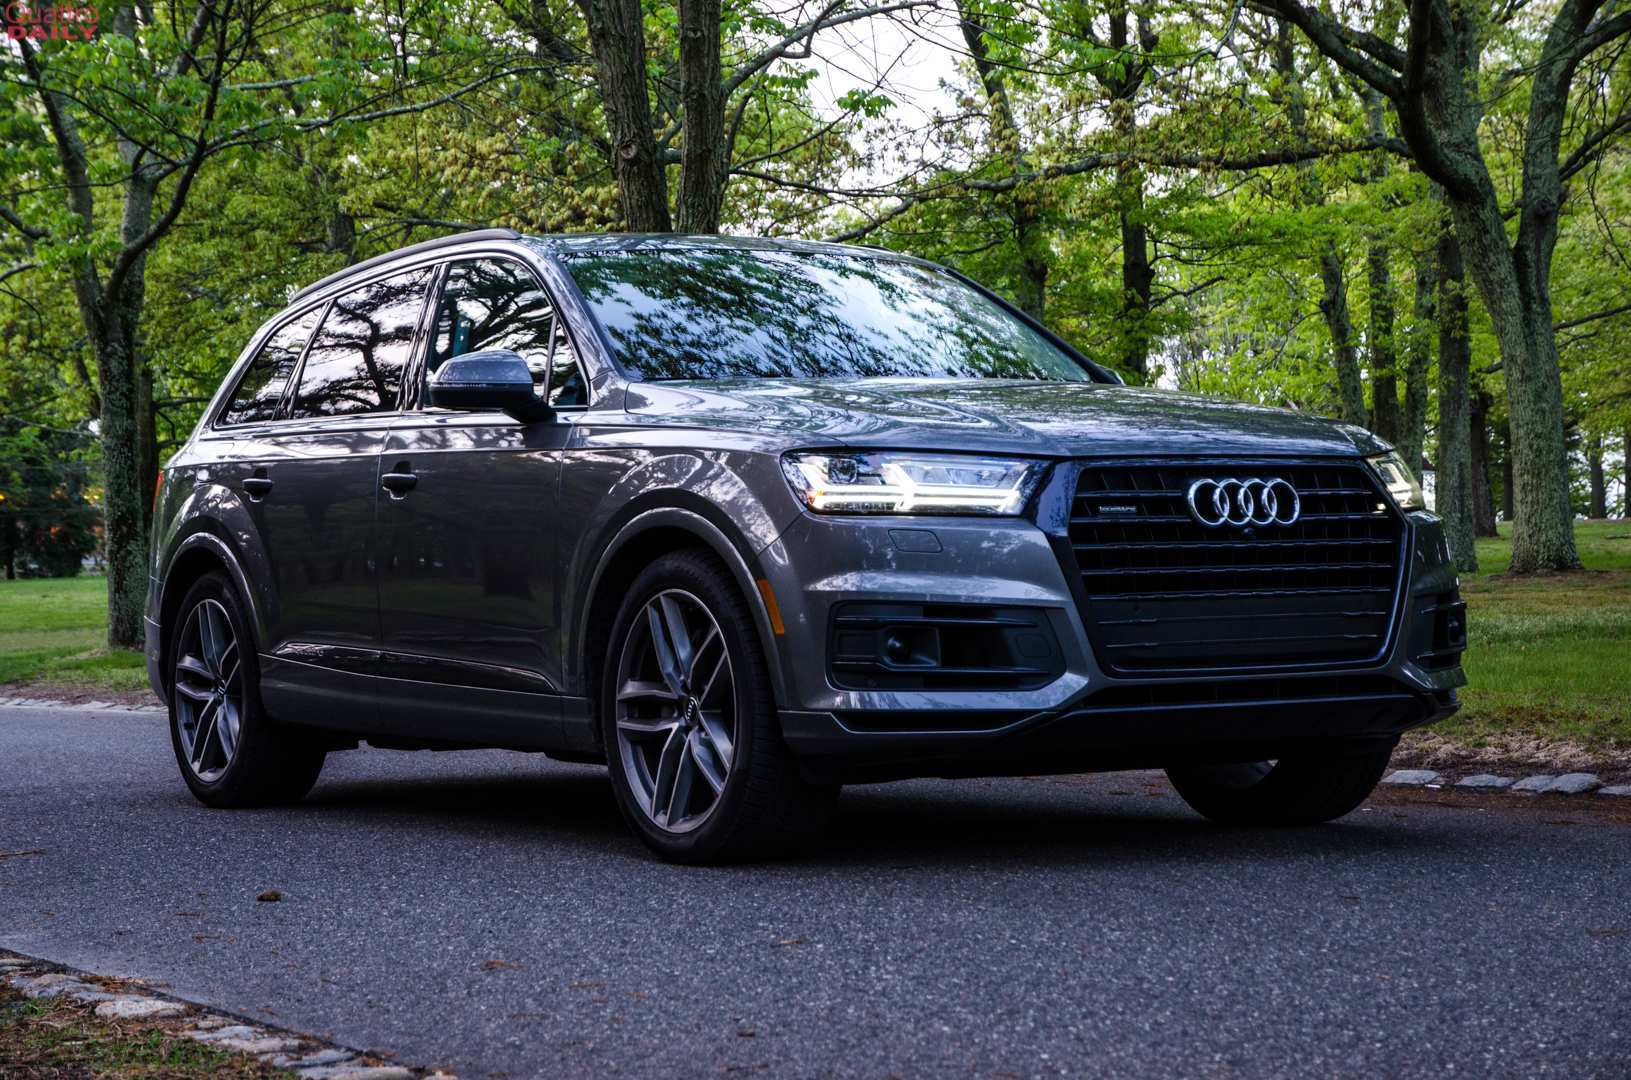 89 All New 2020 Audi Q7 Prices